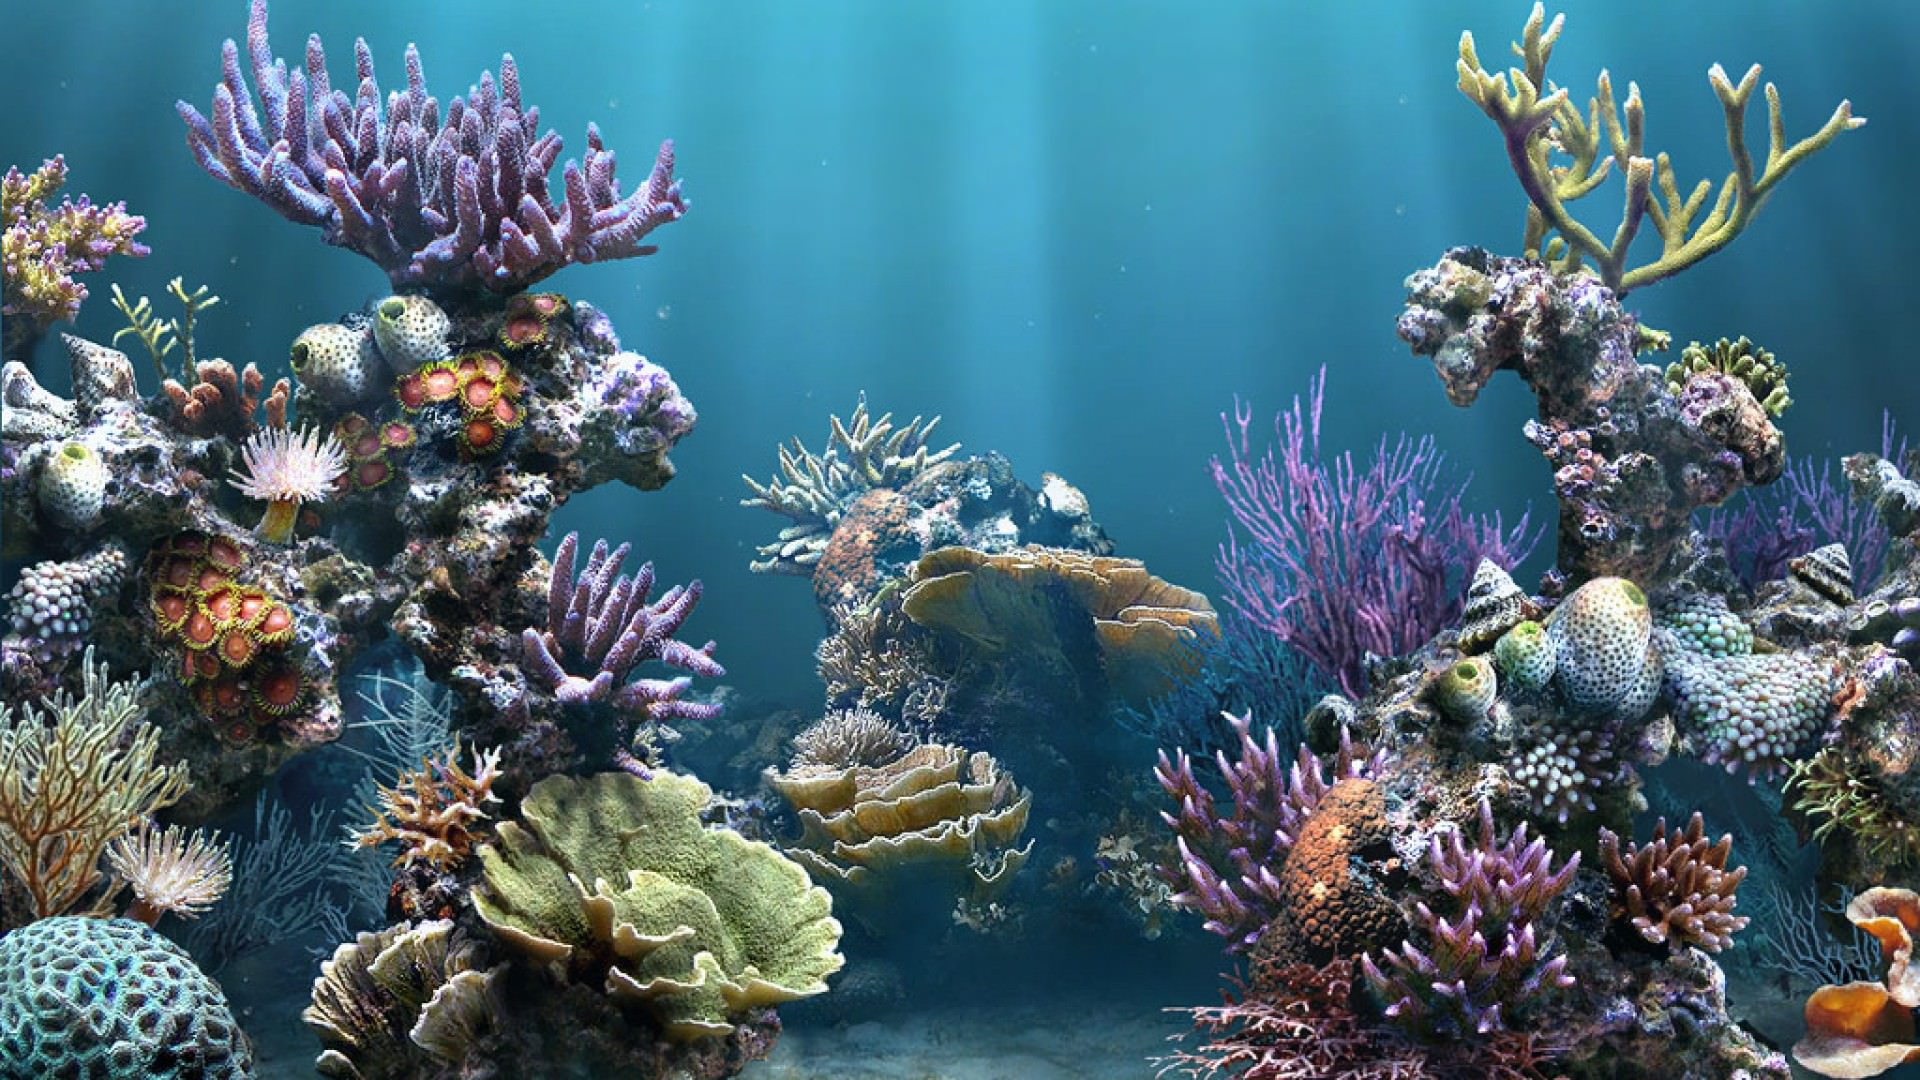 25  Aquarium Backgrounds Wallpapers Images Pictures Design Trends